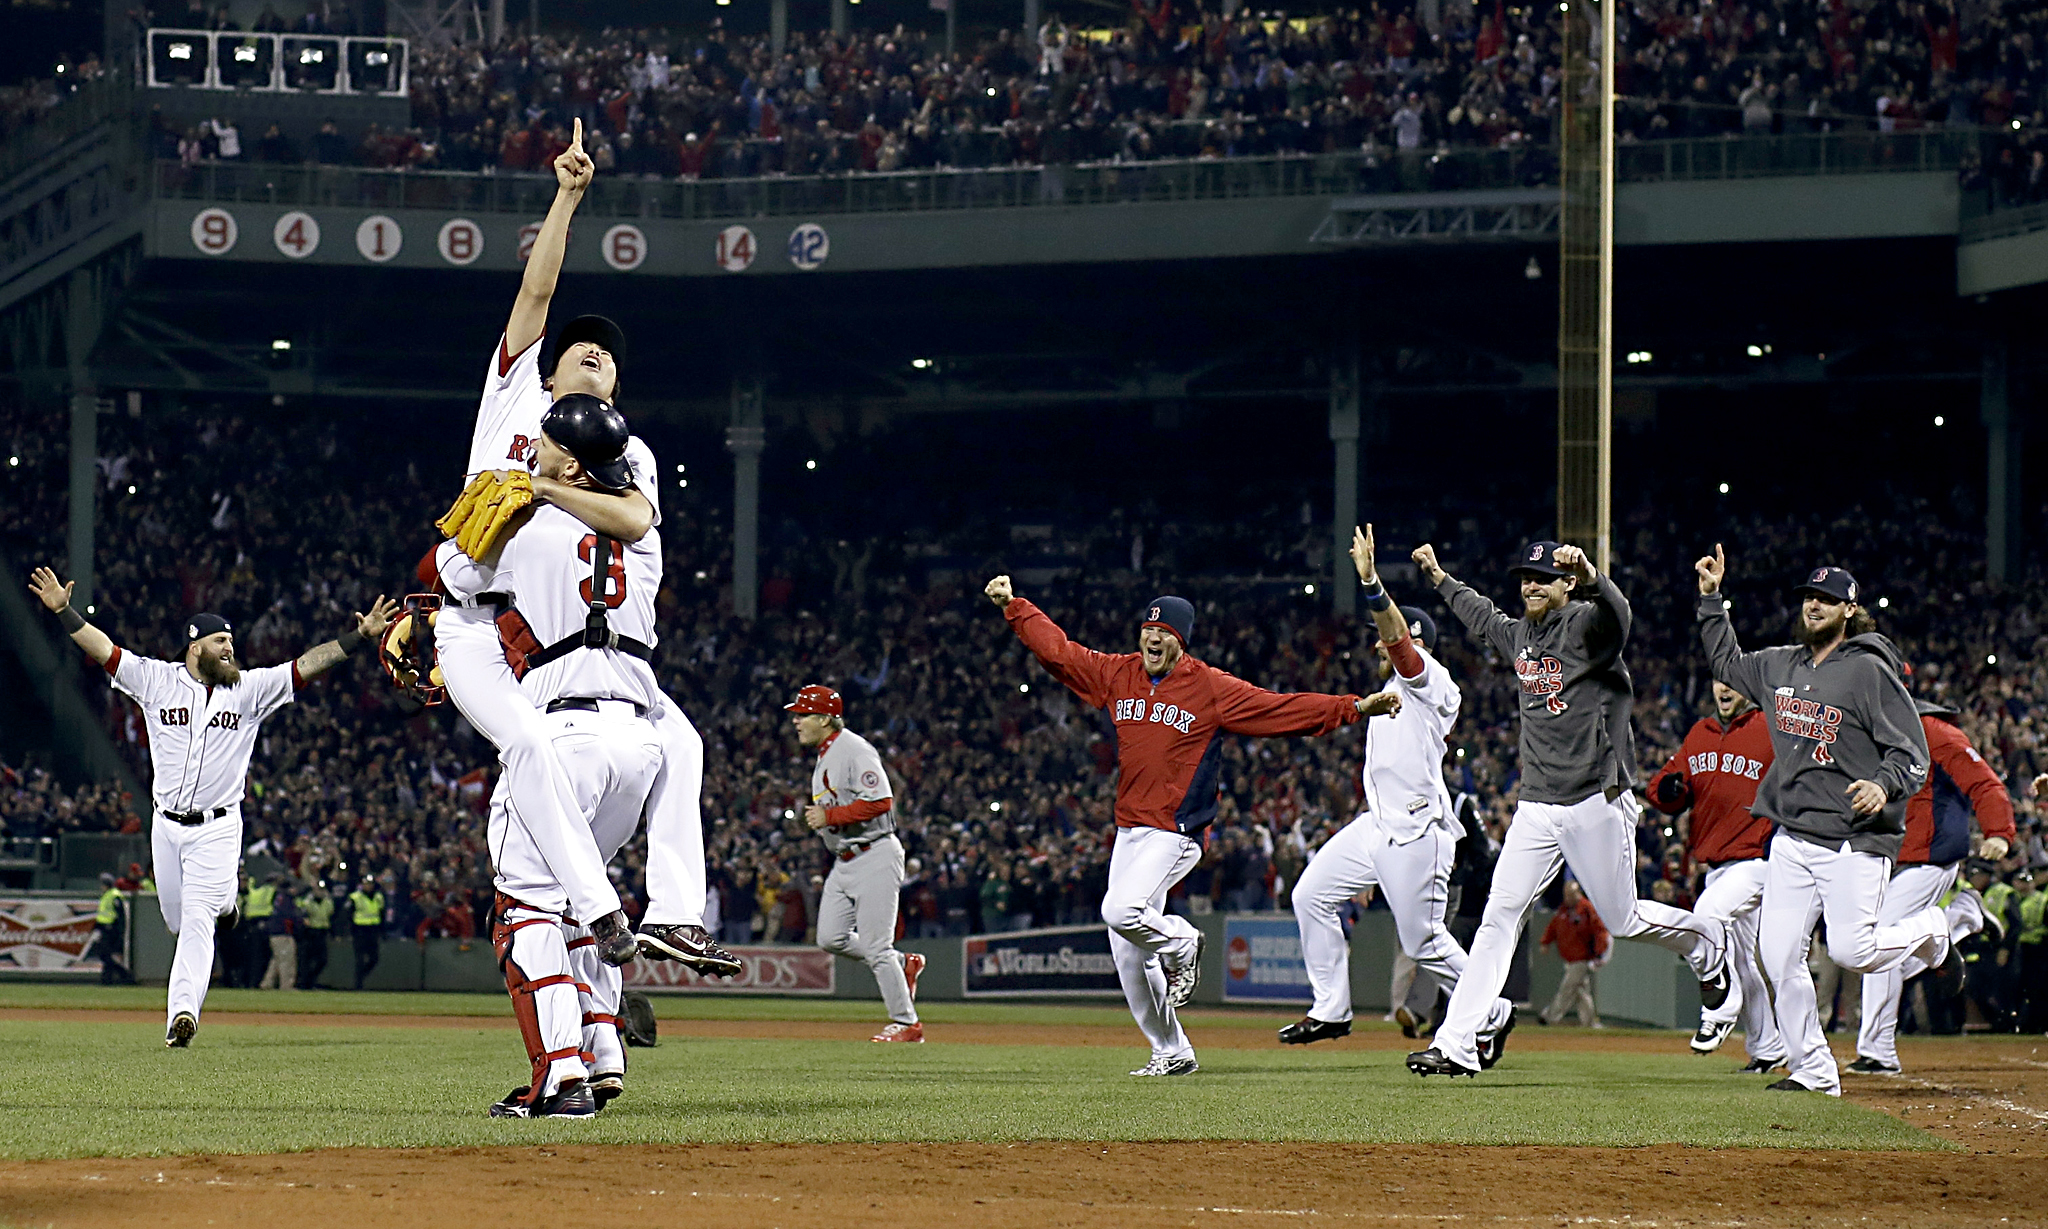 Boston Red Sox relief pitcher Koji Uehara and catcher David Ross celebrate as Red Sox beat St. Louis Cardinals' to end a 95 year wait to clinch the World Series title at Fenway Park Stadium, Boston. The last time Red Sox won the World Series, all-time great Babe Ruth was one of their lead pitchers.